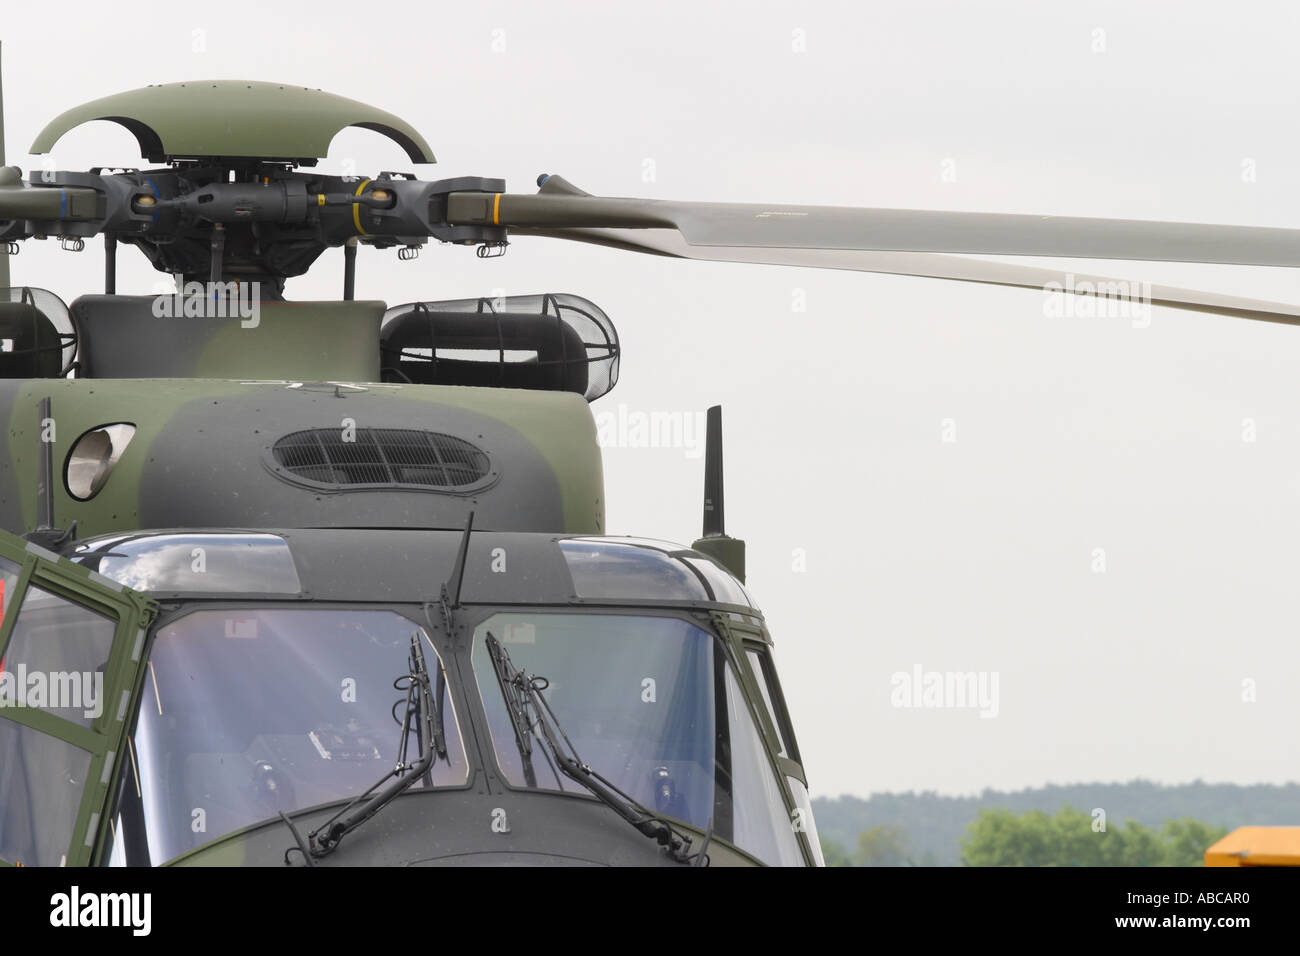 Military helicopter cockpit and rotor blades of the NHI NH-90 joint European aviation aerospace cooperation venture - Stock Image